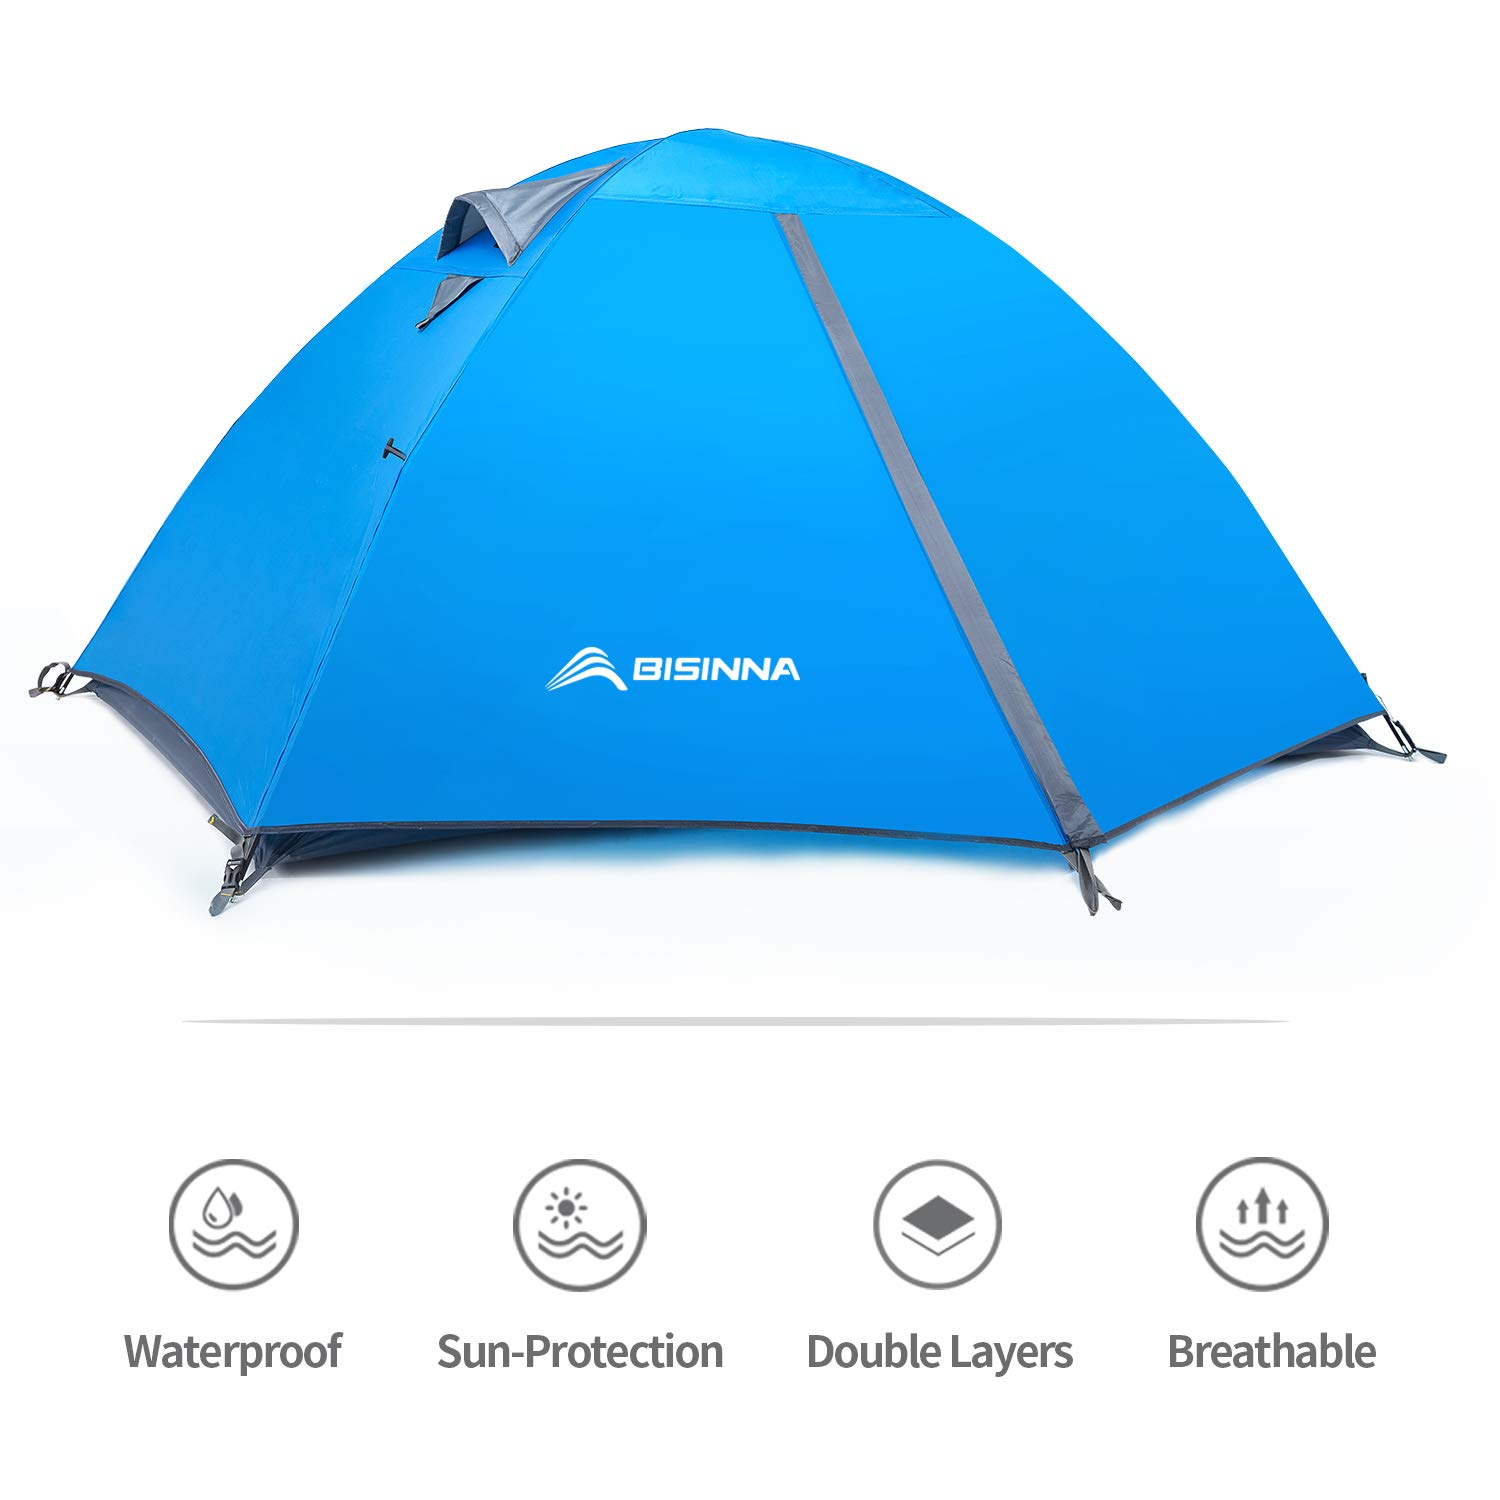 BISINNA 2 Person Camping Tent Lightweight Backpacking Tent Waterproof Windproof Two Doors Easy Setup Double Layer Outdoor Tent for Camping Beach Hunting Hiking Mountaineering Travel by BISINNA